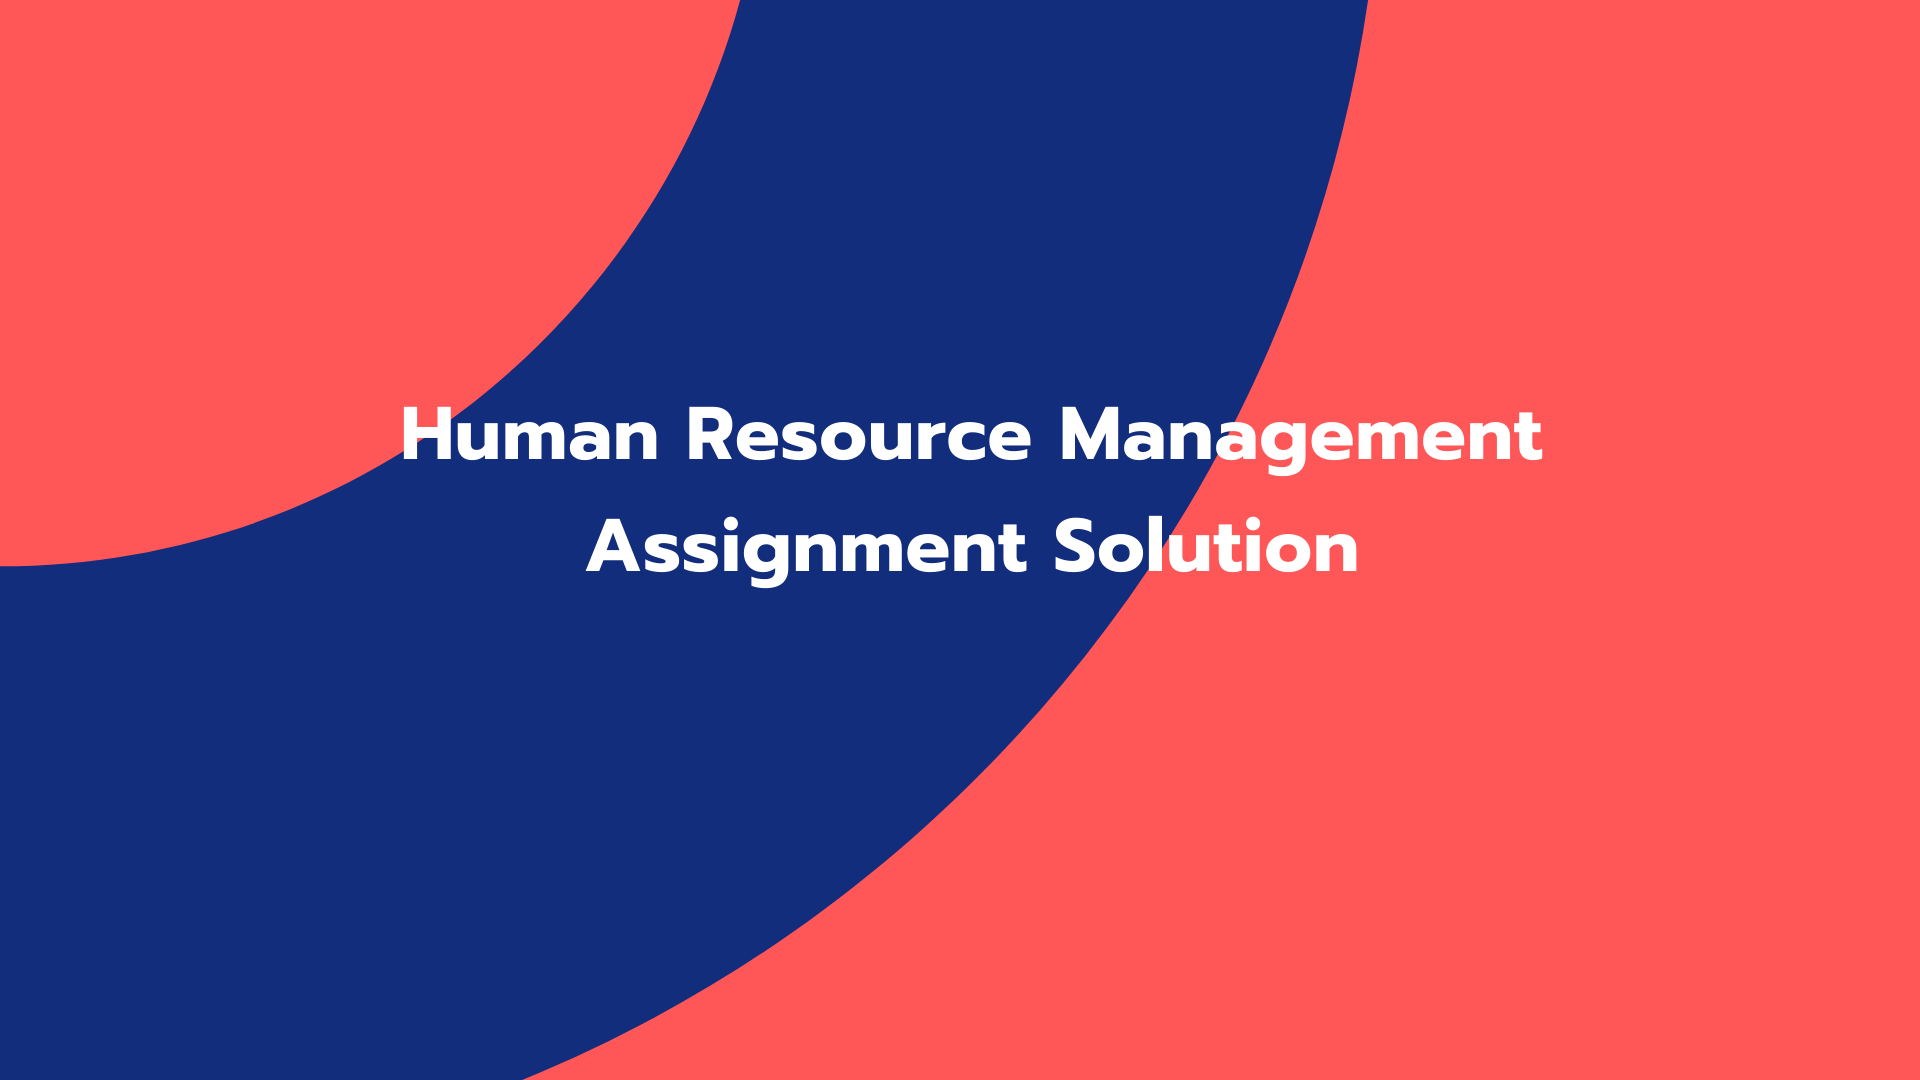 Human Resource Management Assignment Solution